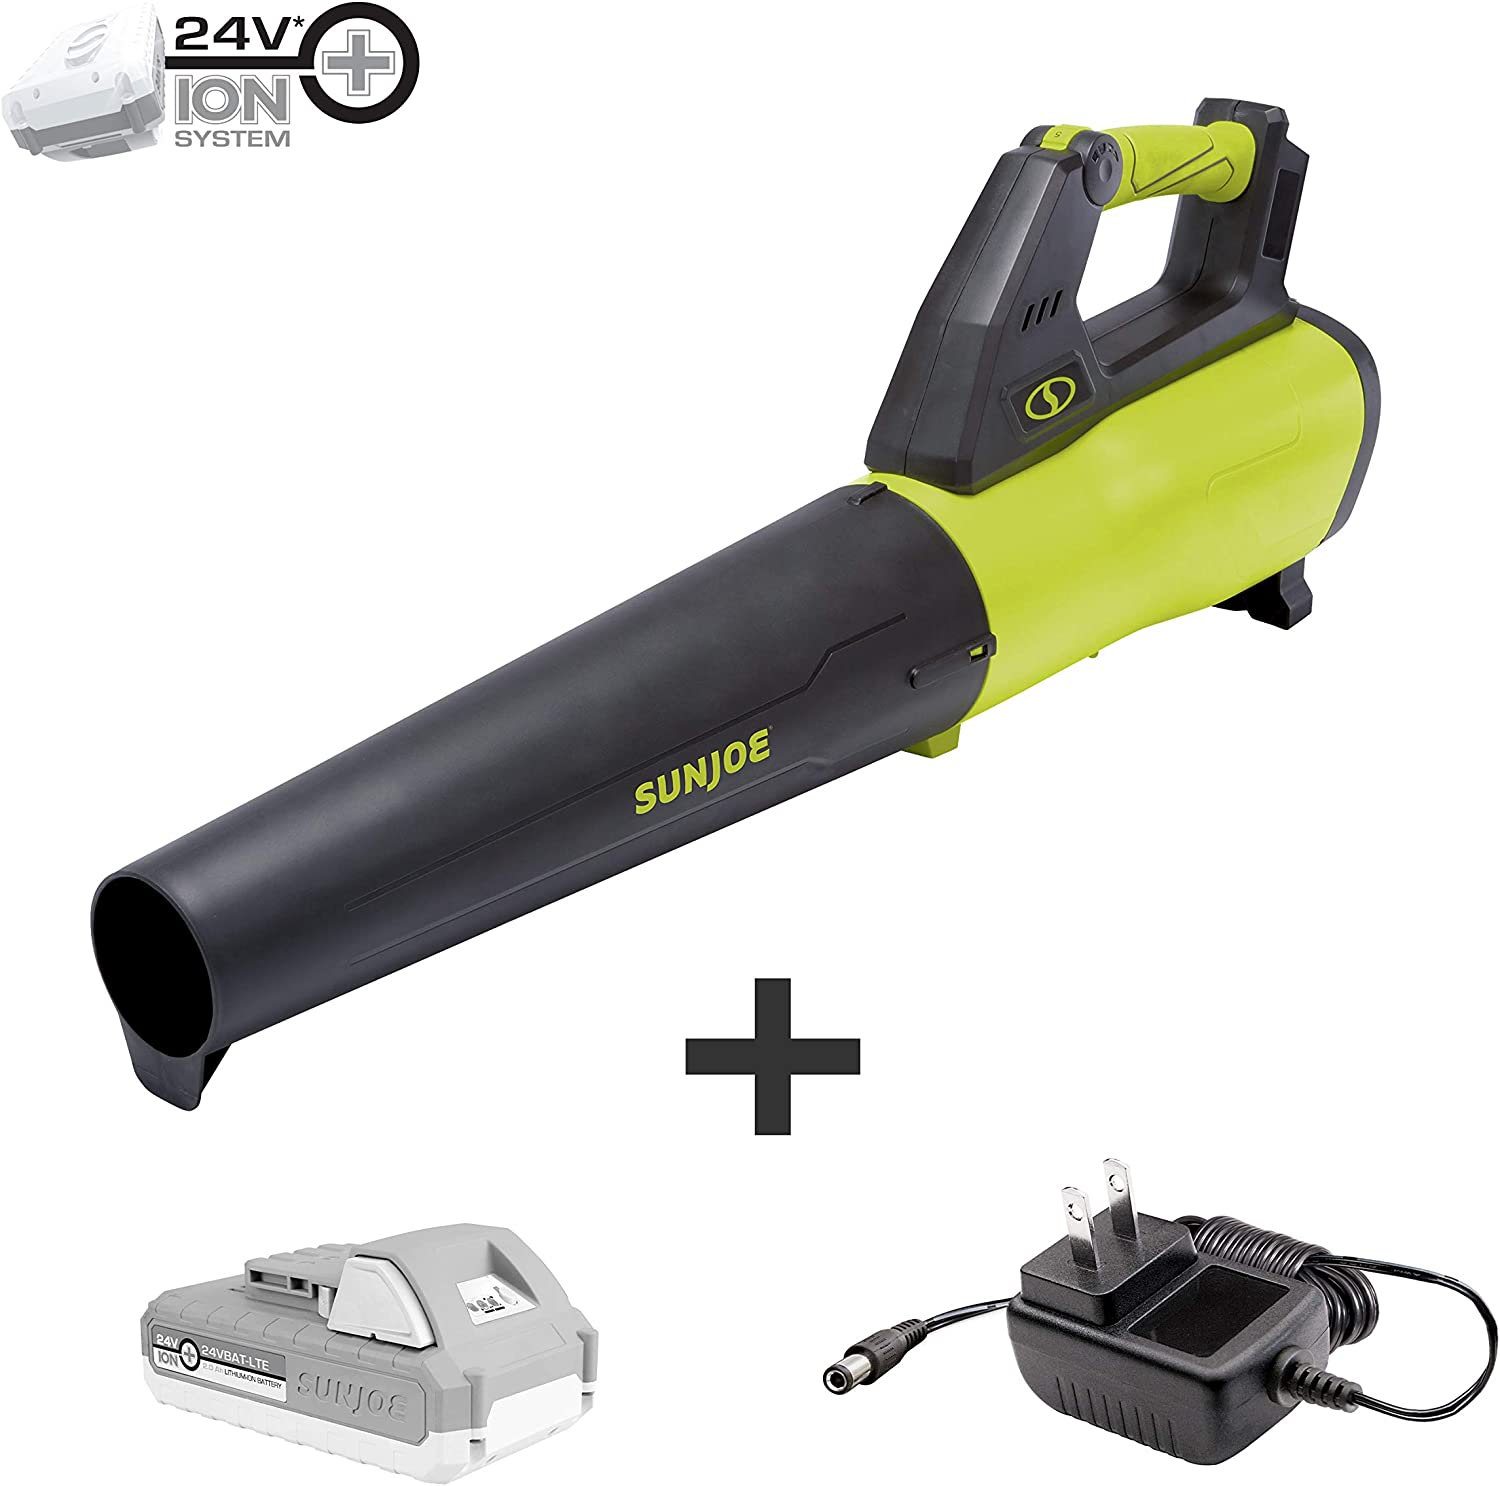 Sun Joe 24V-JB-LTE 24-Volt 385-CFM Amp Turbine Cordless Jet Leaf Blower, Kit w 2.0-Ah Battery Quick Charger